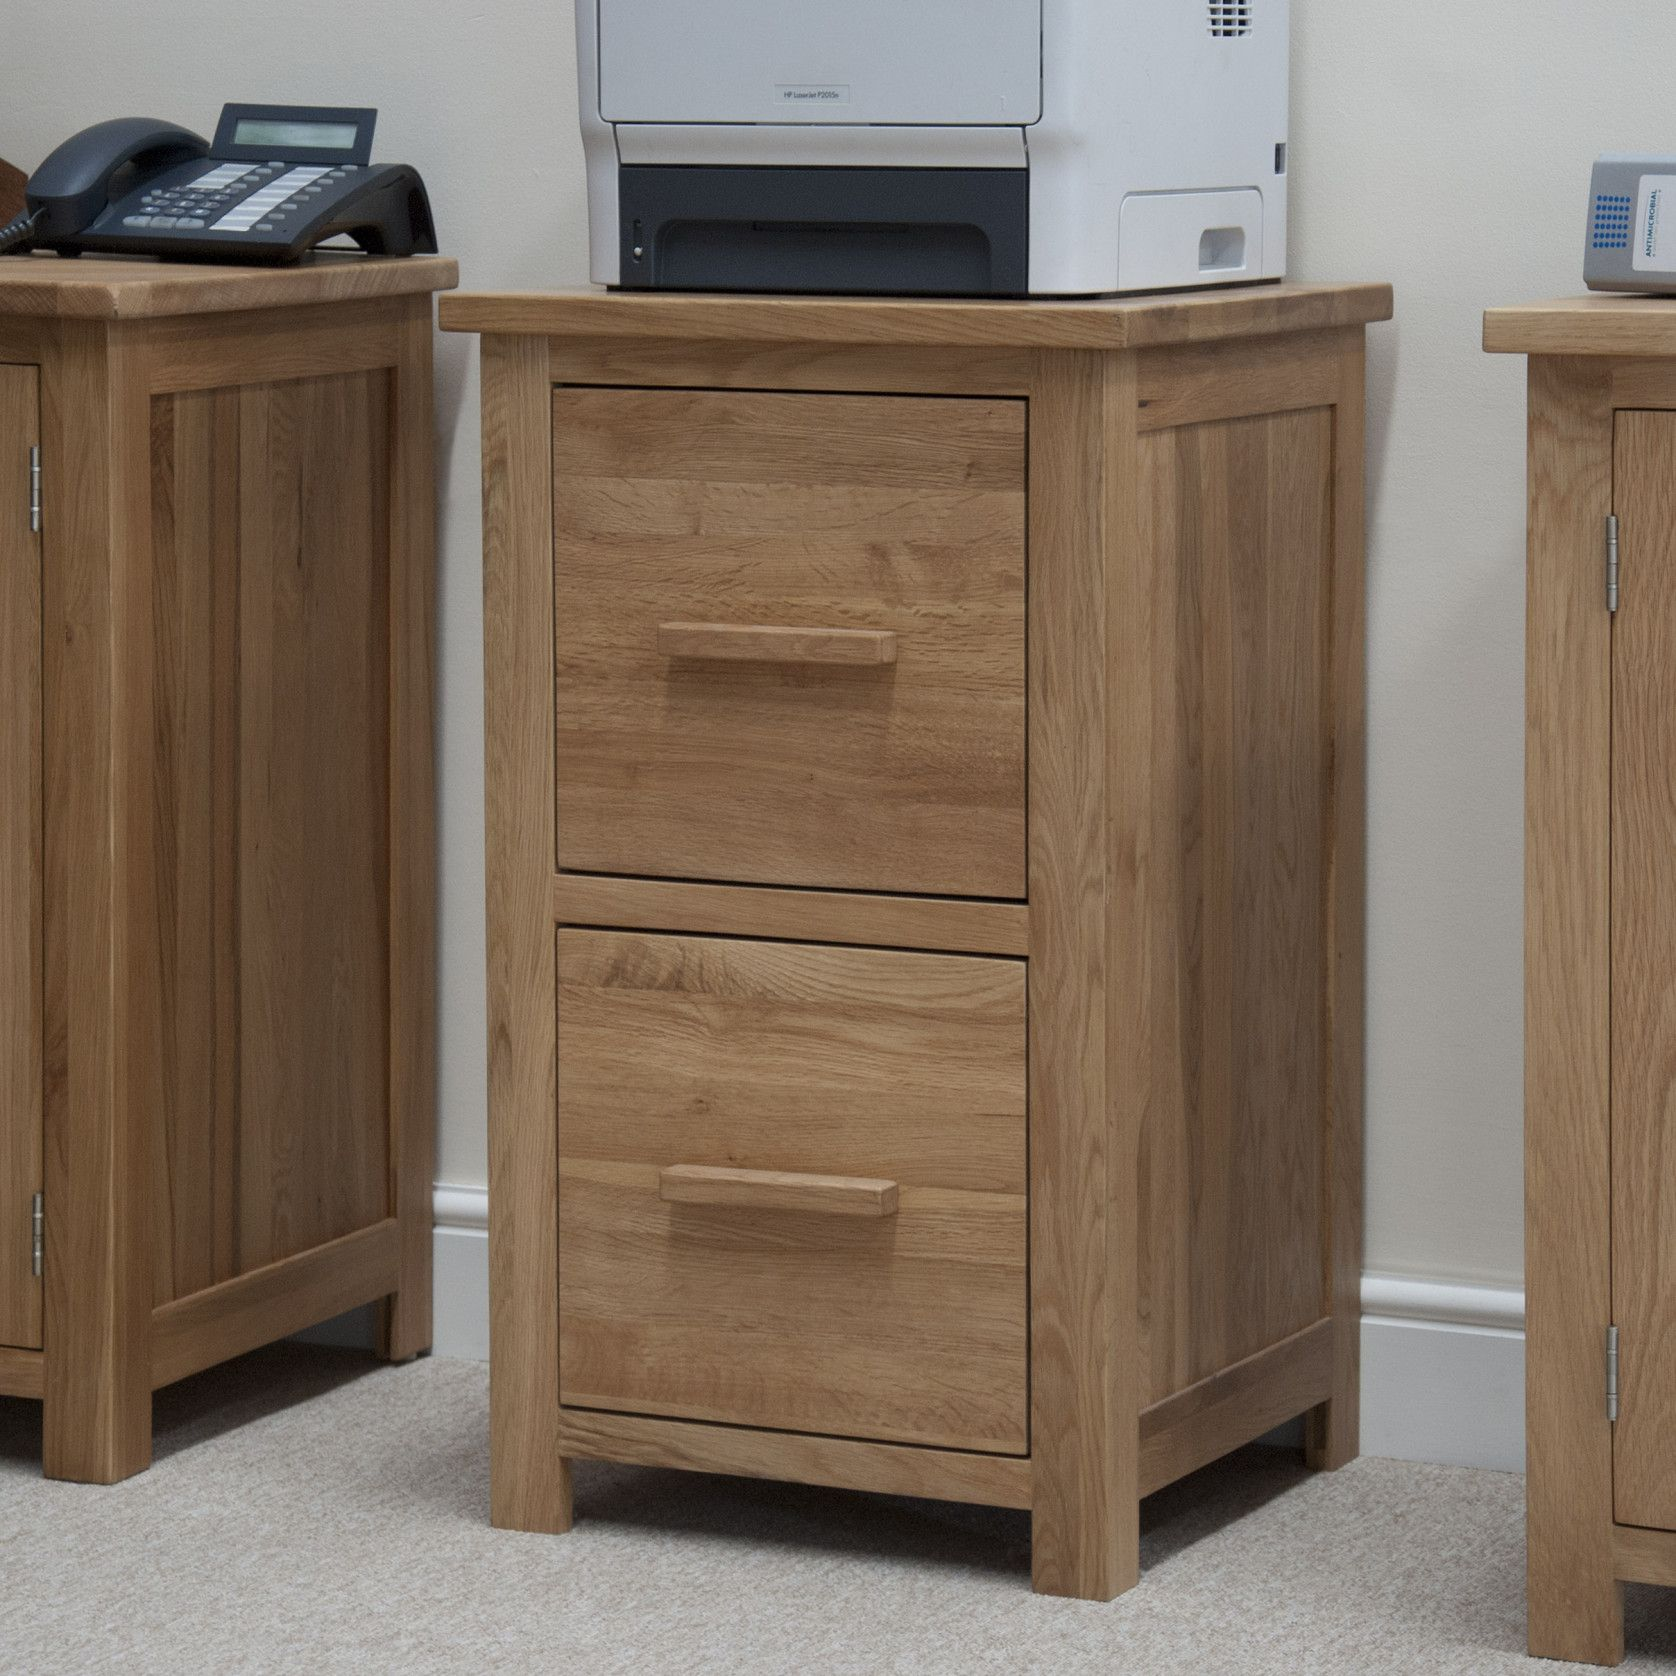 2019 2 Drawer Wooden Filing Cabinets For Home Kitchen Remodeling Ideas On A Small Budget